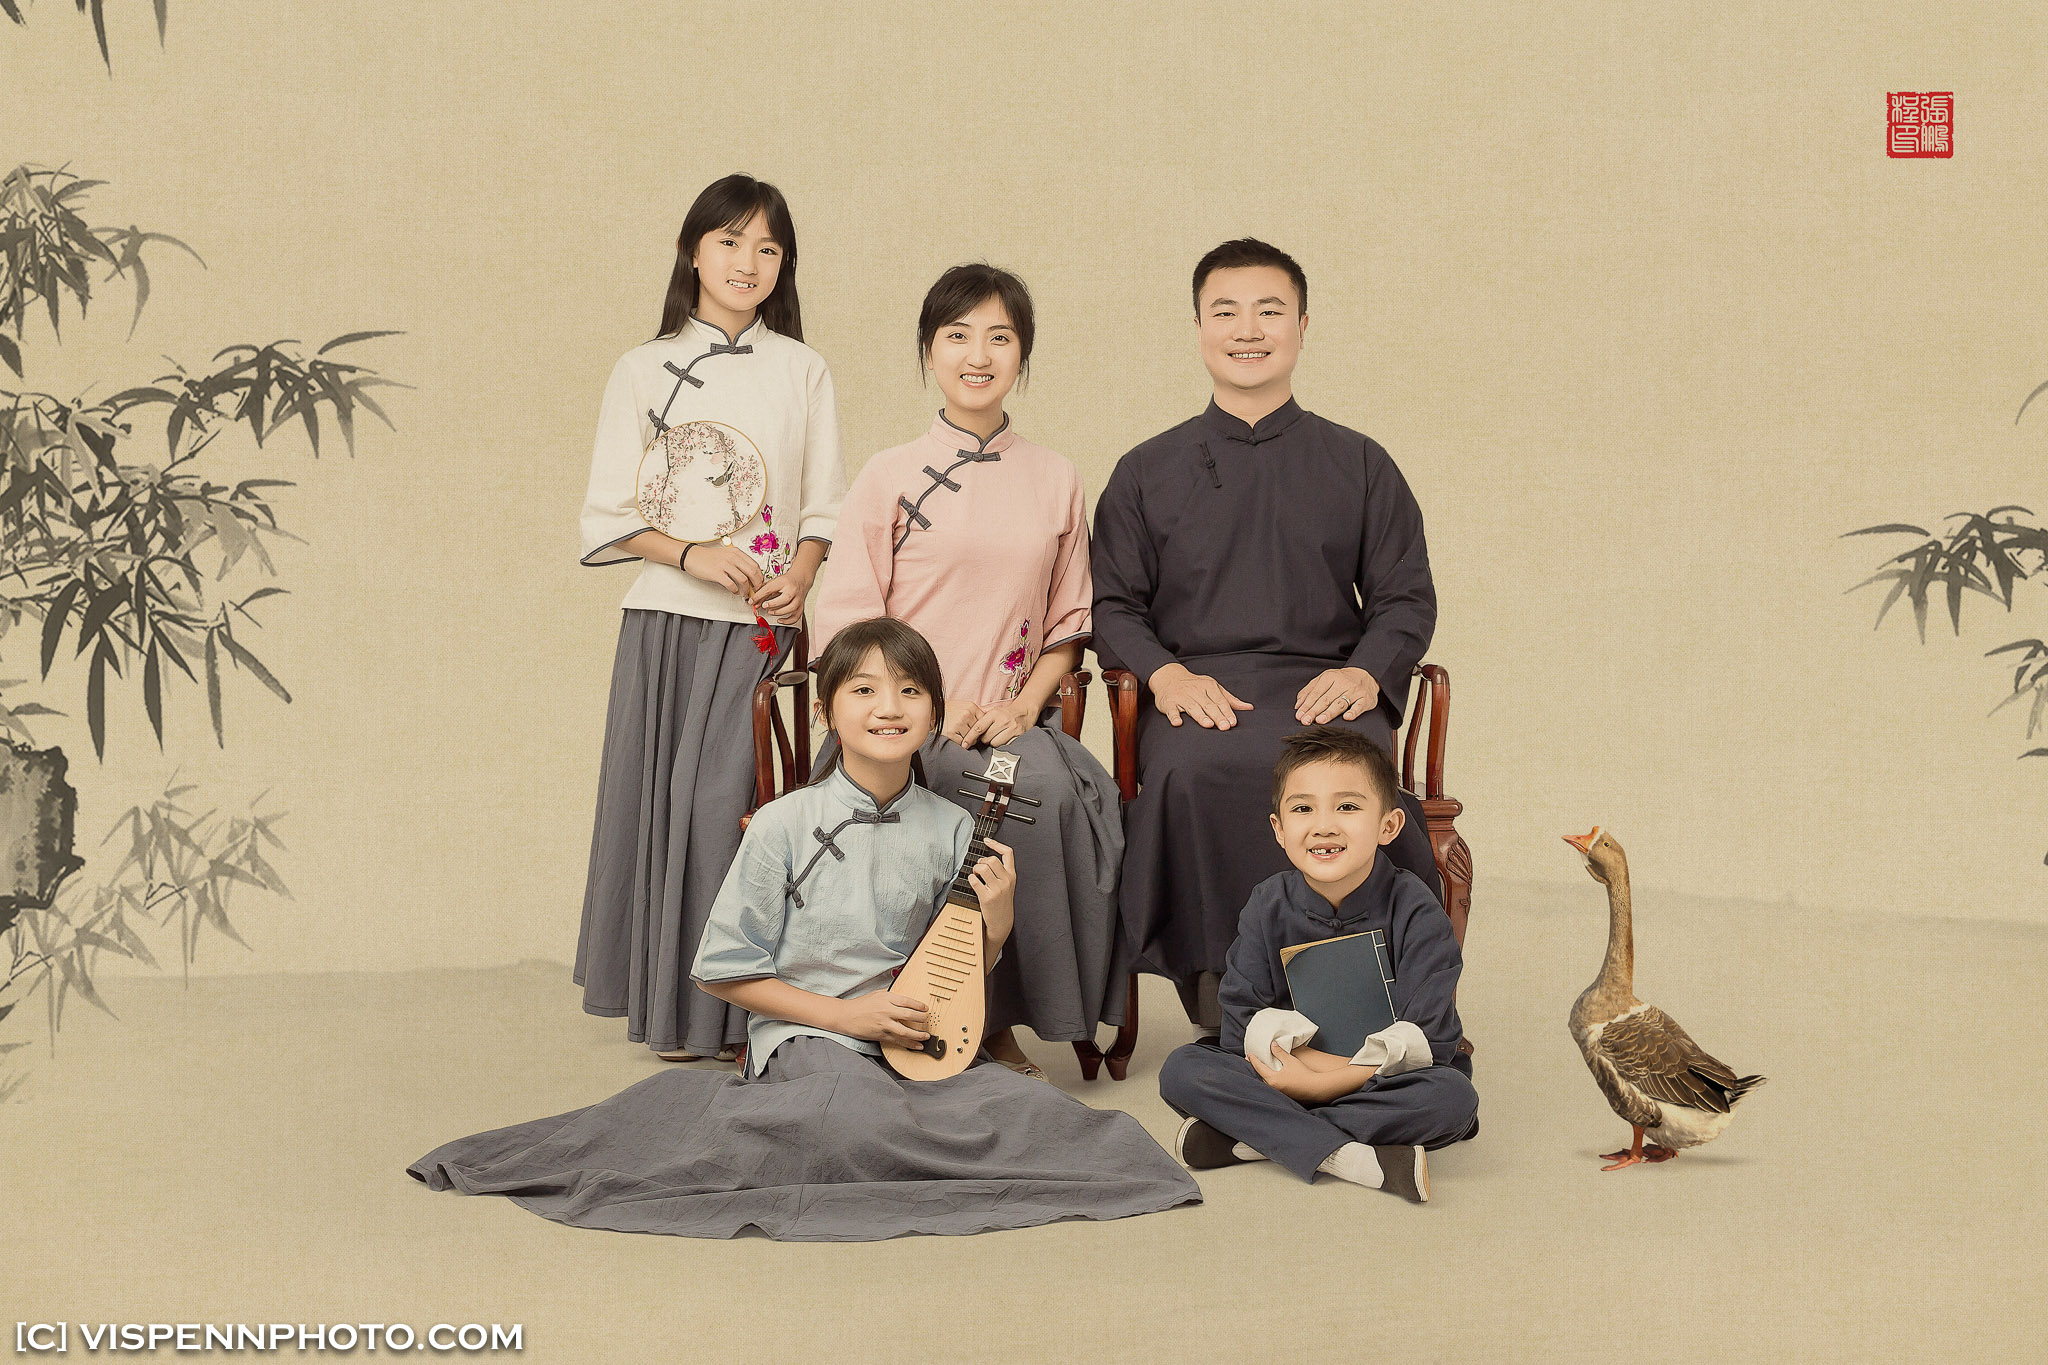 Melbourne Newborn Baby Family Photo BaoBao VISPENN 墨尔本 儿童 宝宝 百天照 满月照 孕妇照 全家福 KIDS VISPENN TeresaZhang 2180